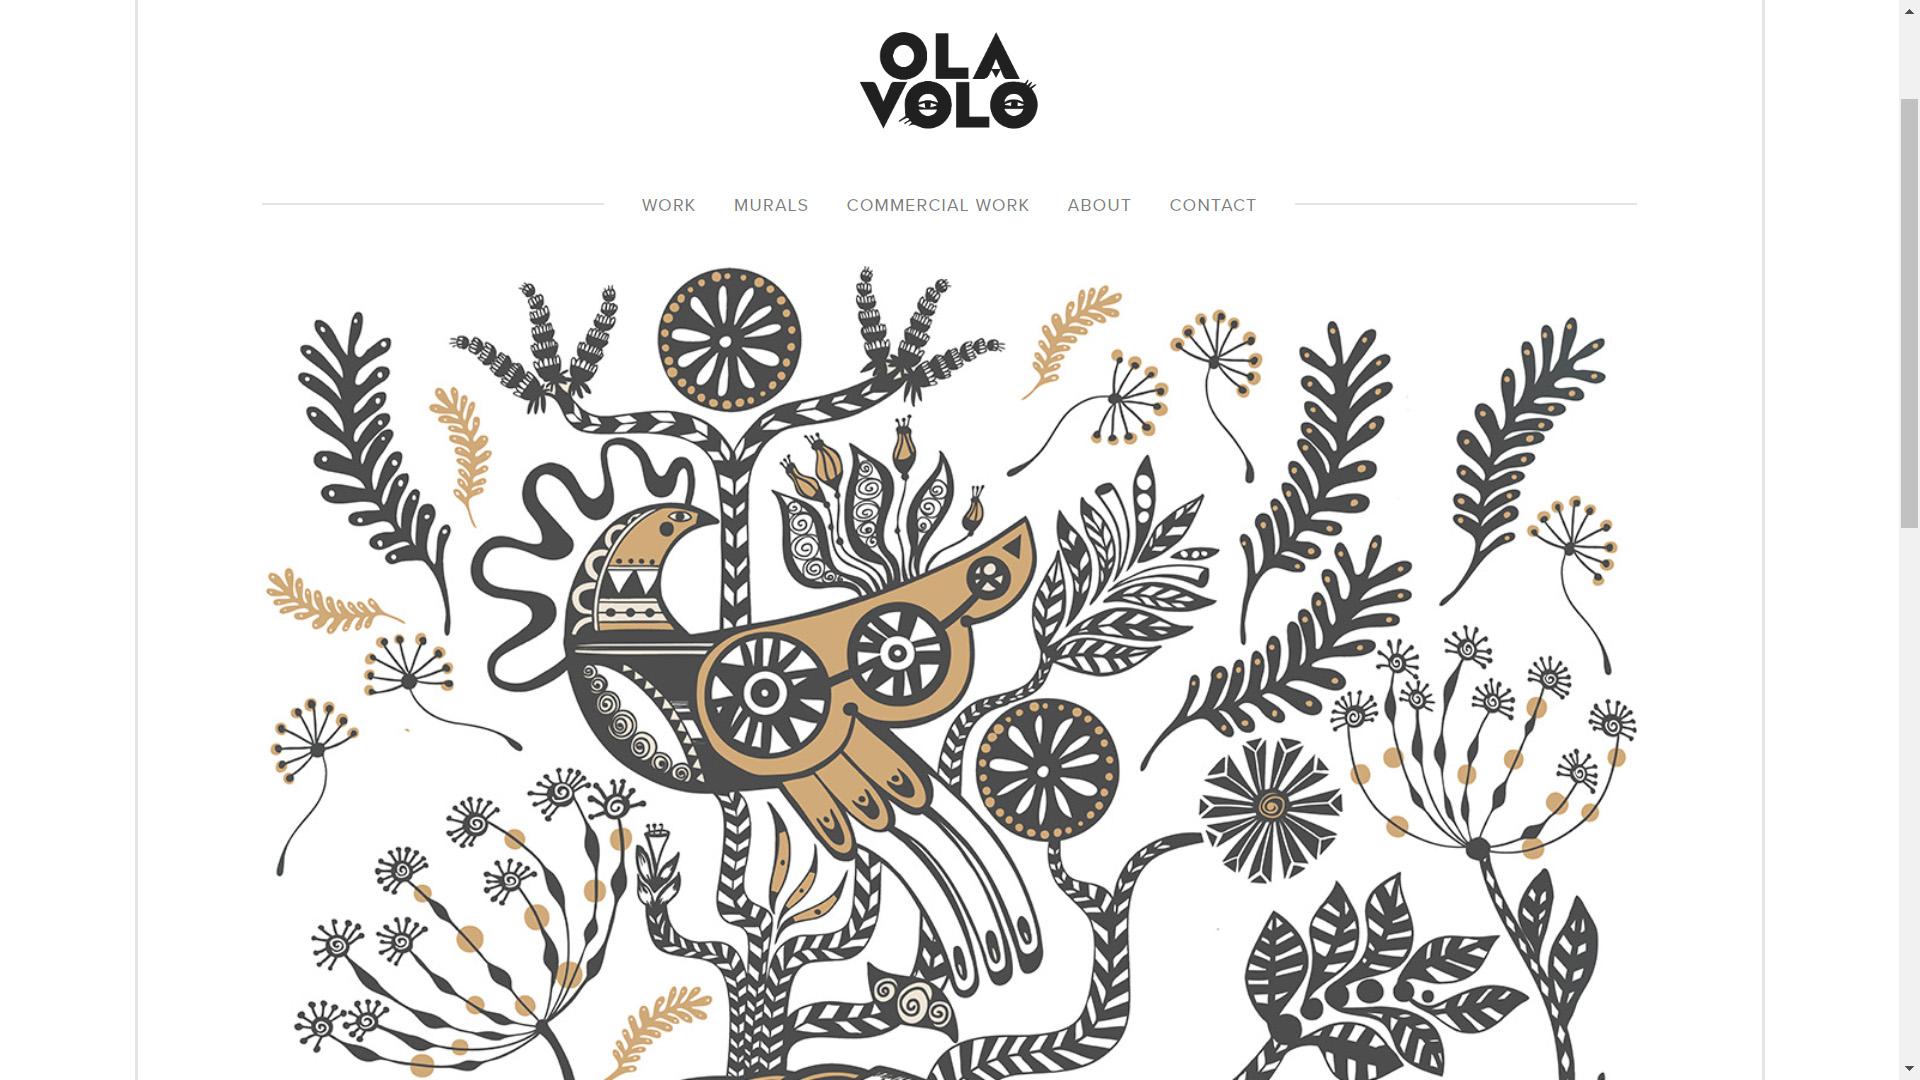 Want some awesome inspiration? Check out the ever talented Ola Volo